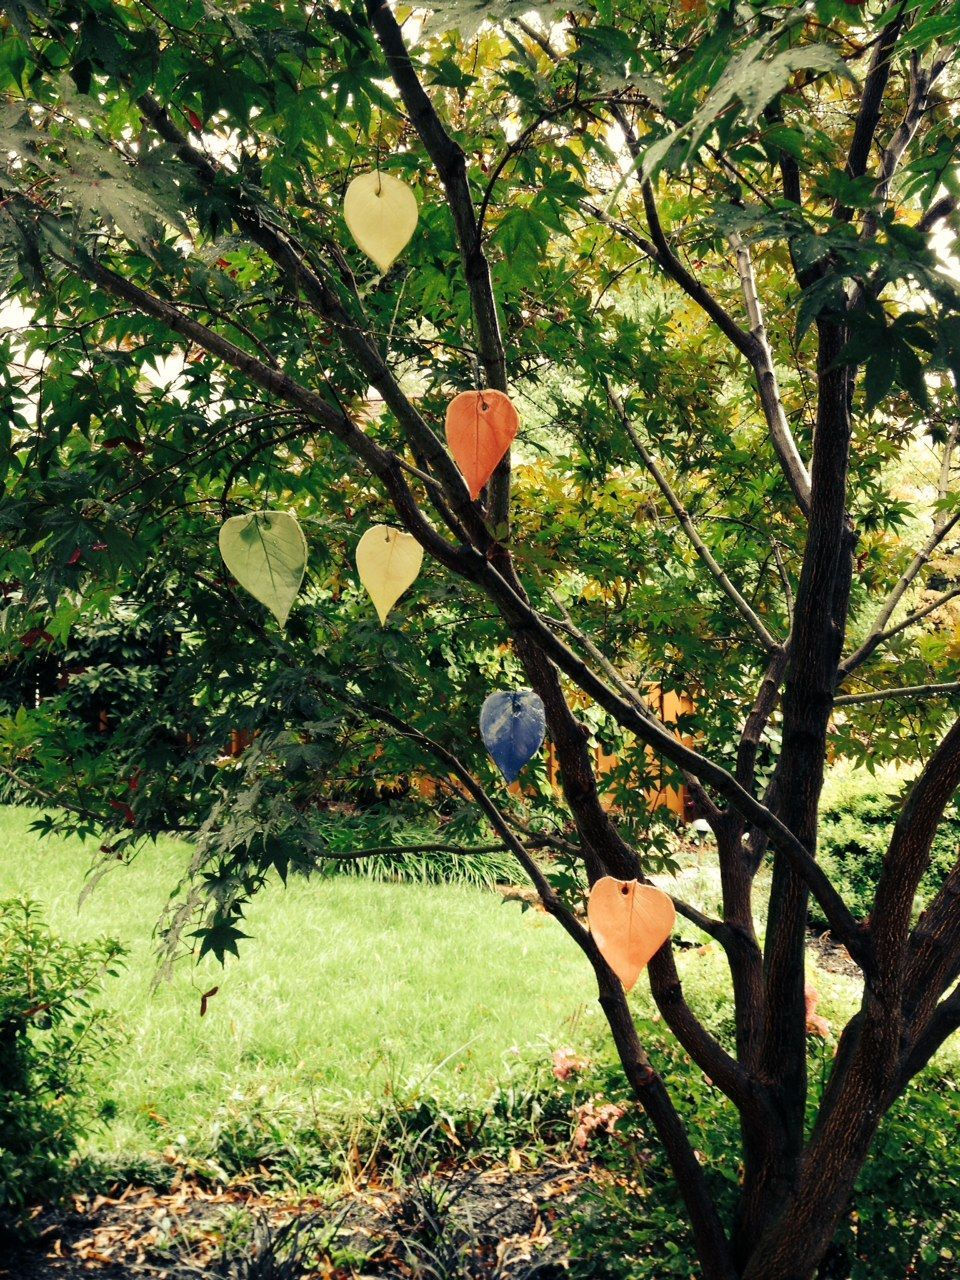 Slab Pottery leaves hanging from a red maple. Can't wait to see how it looks once the leaves fall.